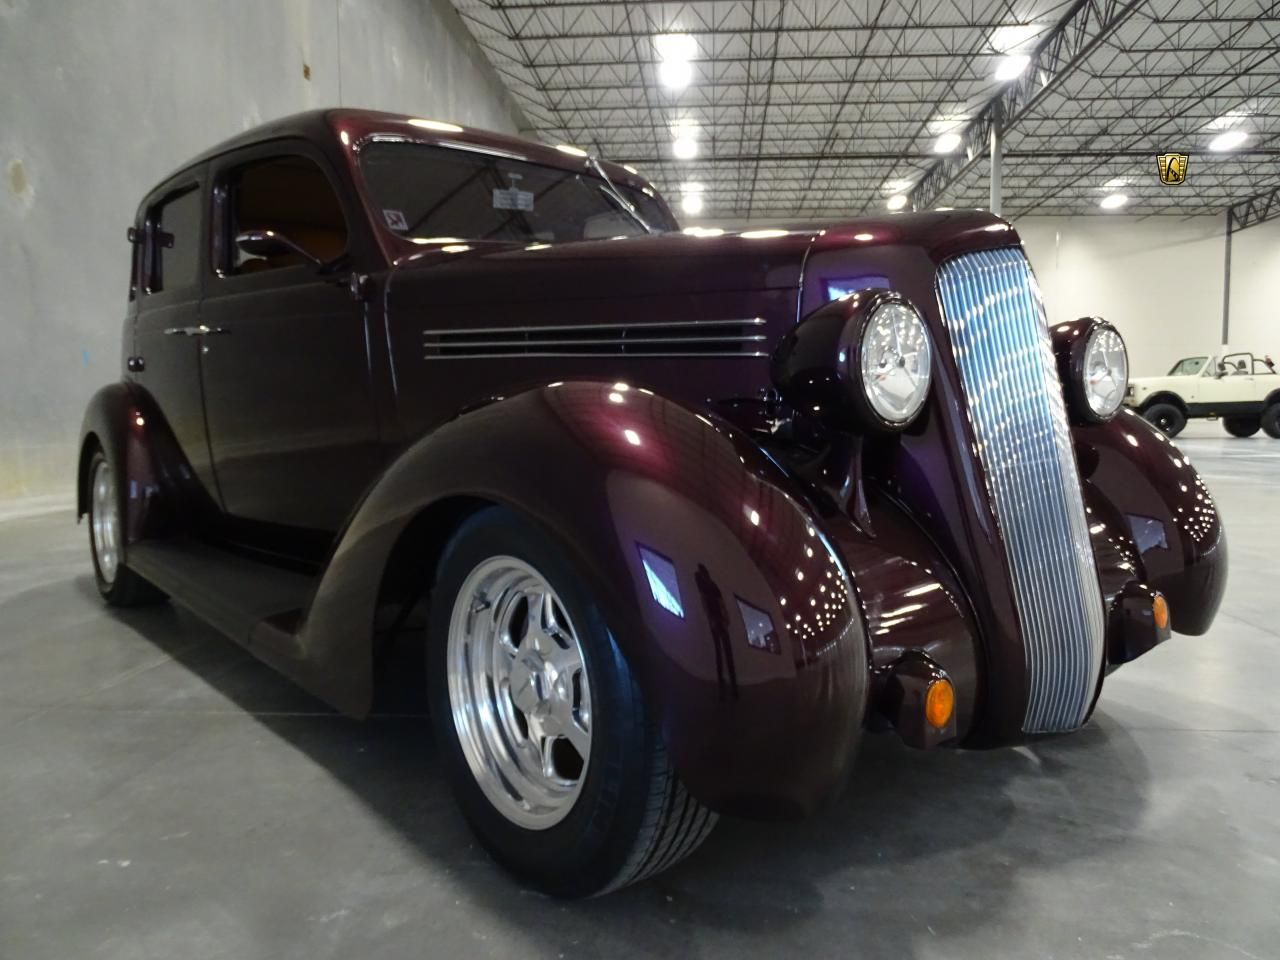 For sale in our Dallas, Texas showroom is a Purple 4 Door